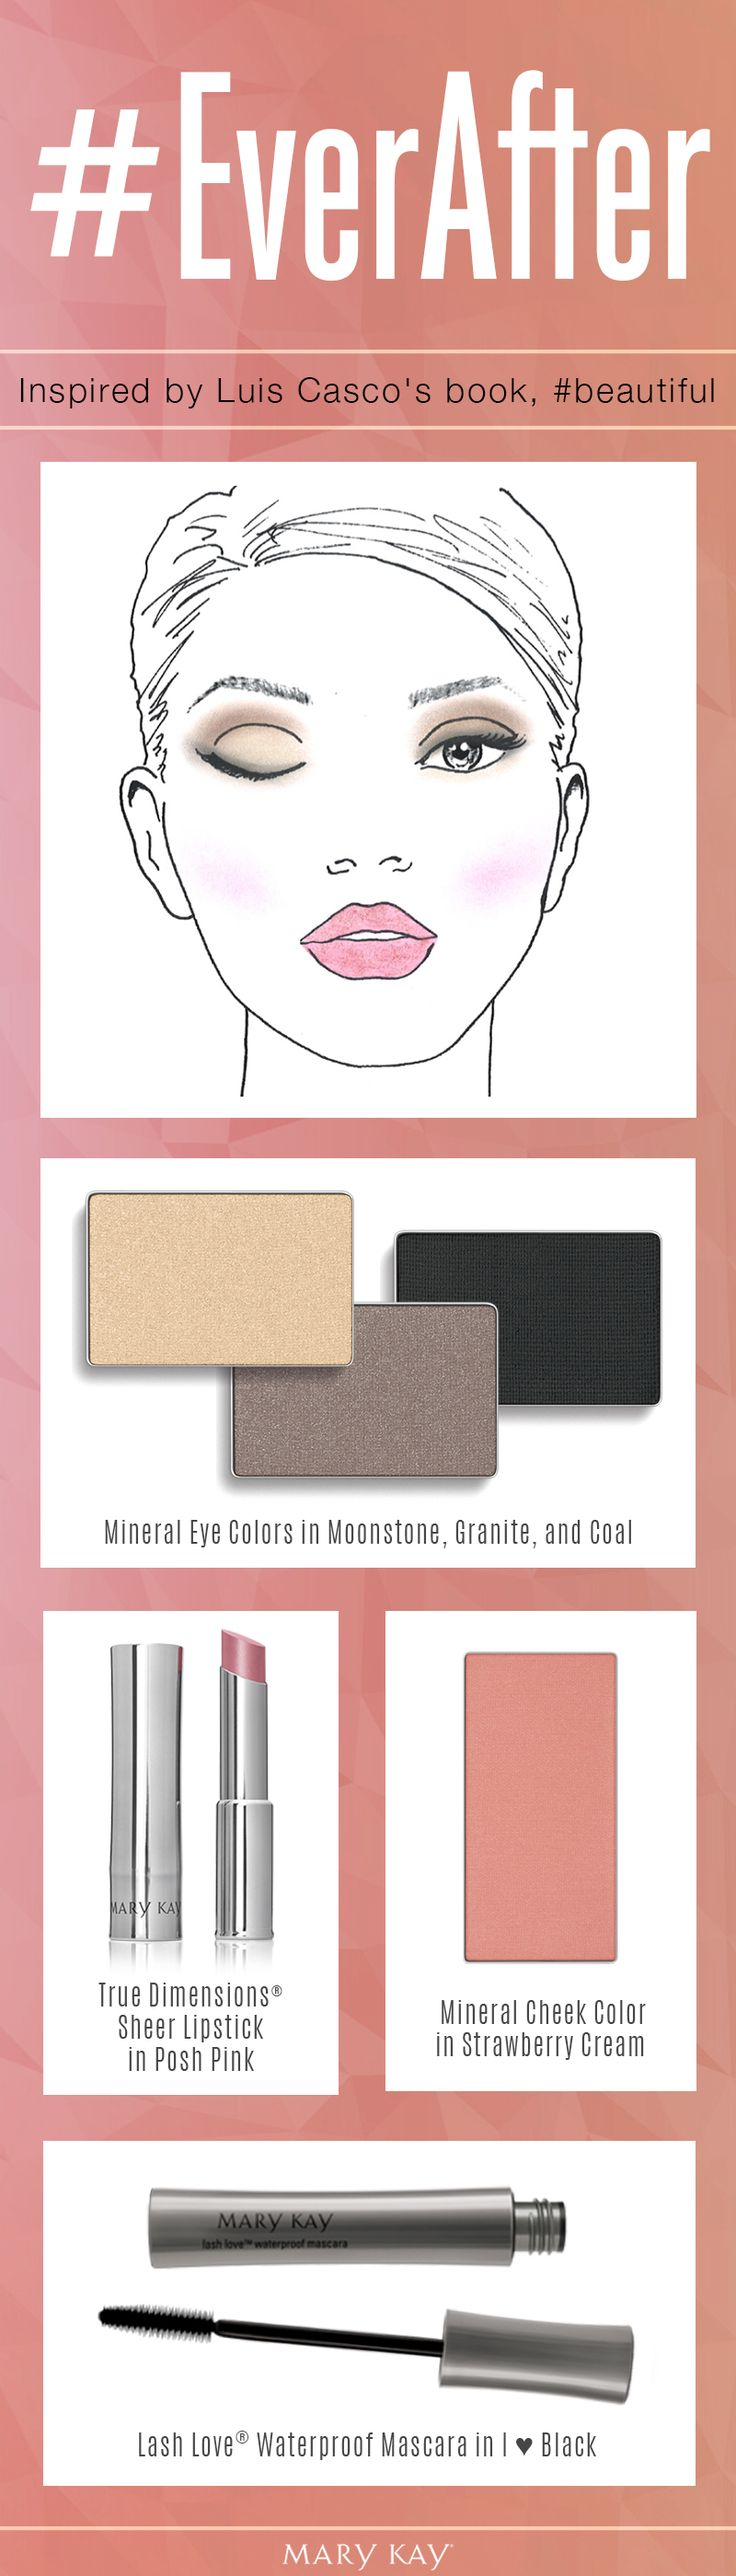 Getting ready for a date night with someone who might end up being The One? We recommend these four makeup products for a romantic, luminous look he won't forget! | Mary Kay